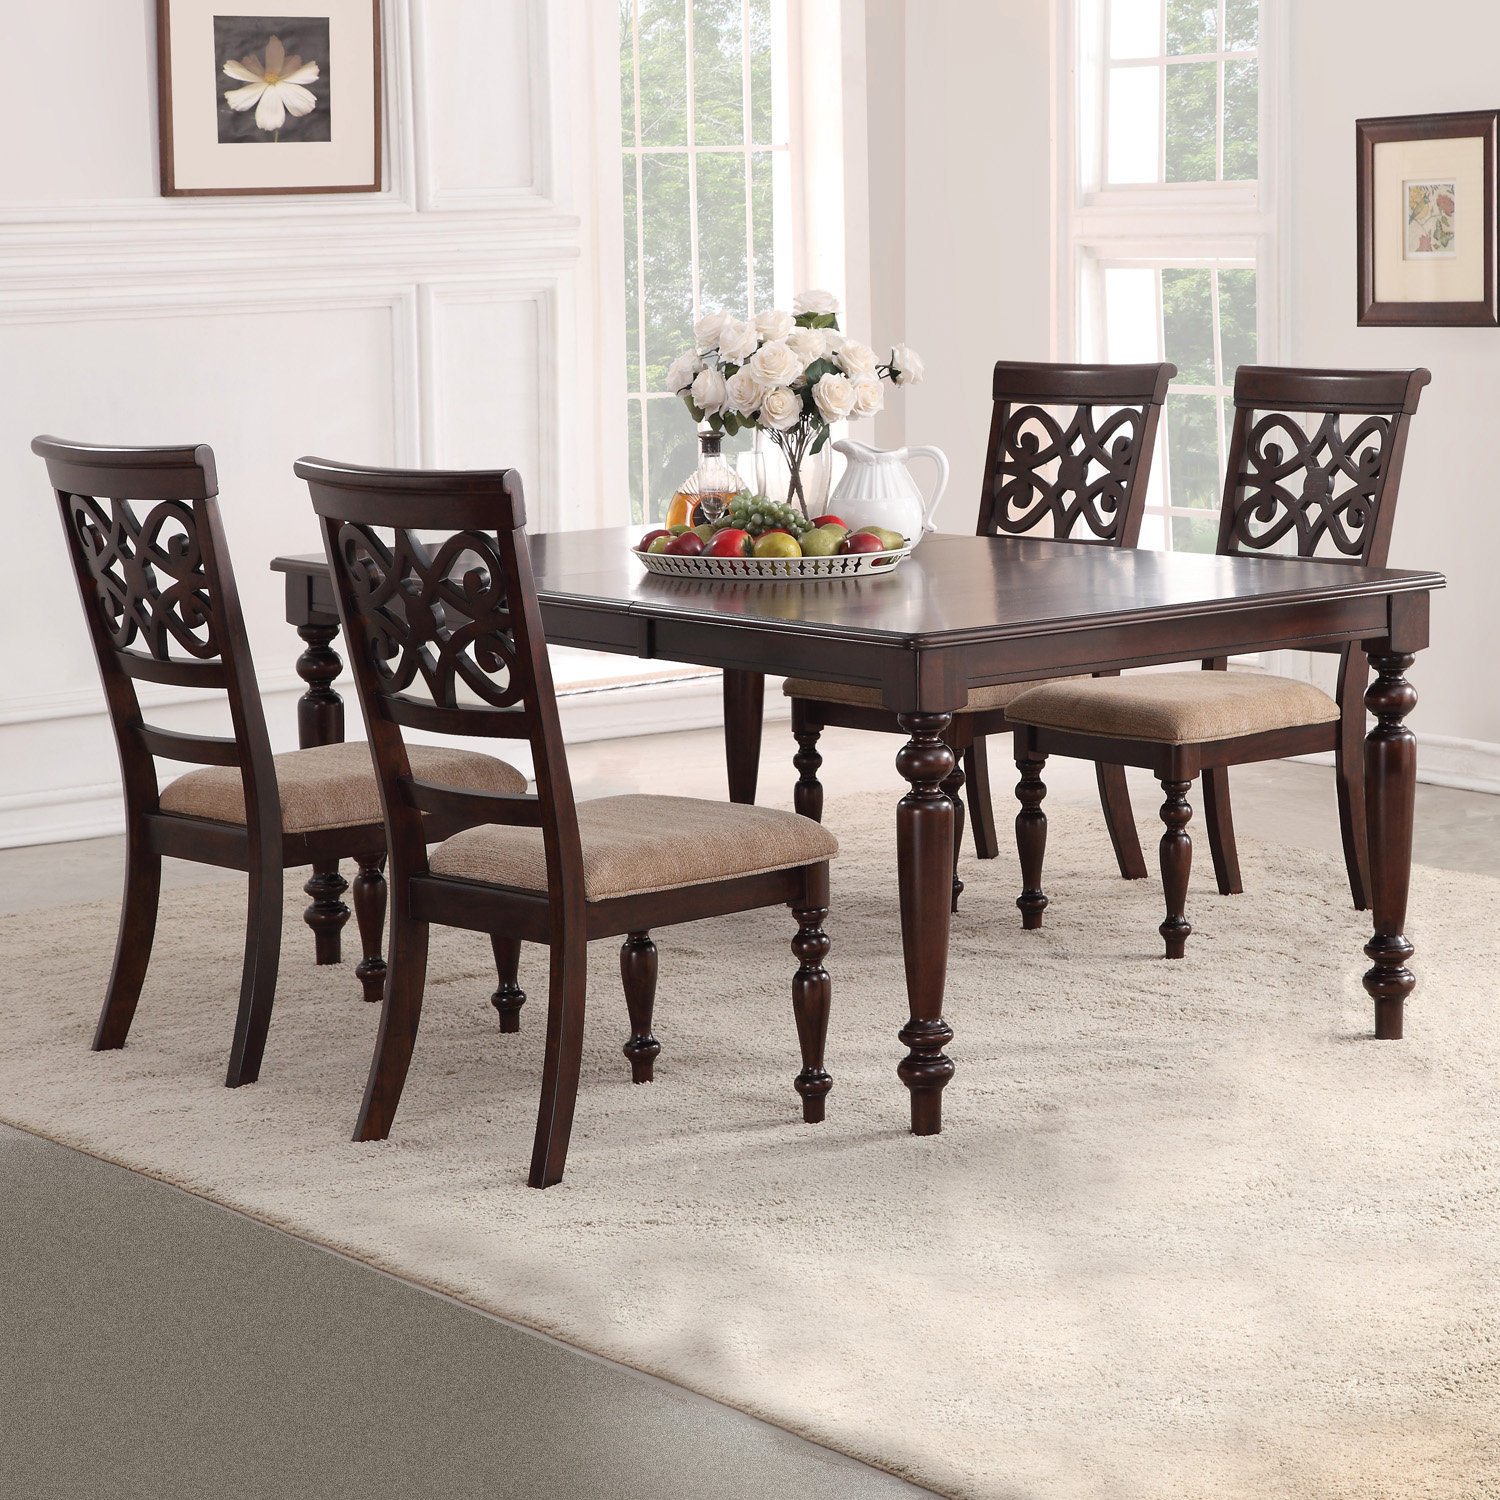 Wayfair With Favorite Laconia 7 Pieces Solid Wood Dining Sets (Set Of 7) (#17 of 20)